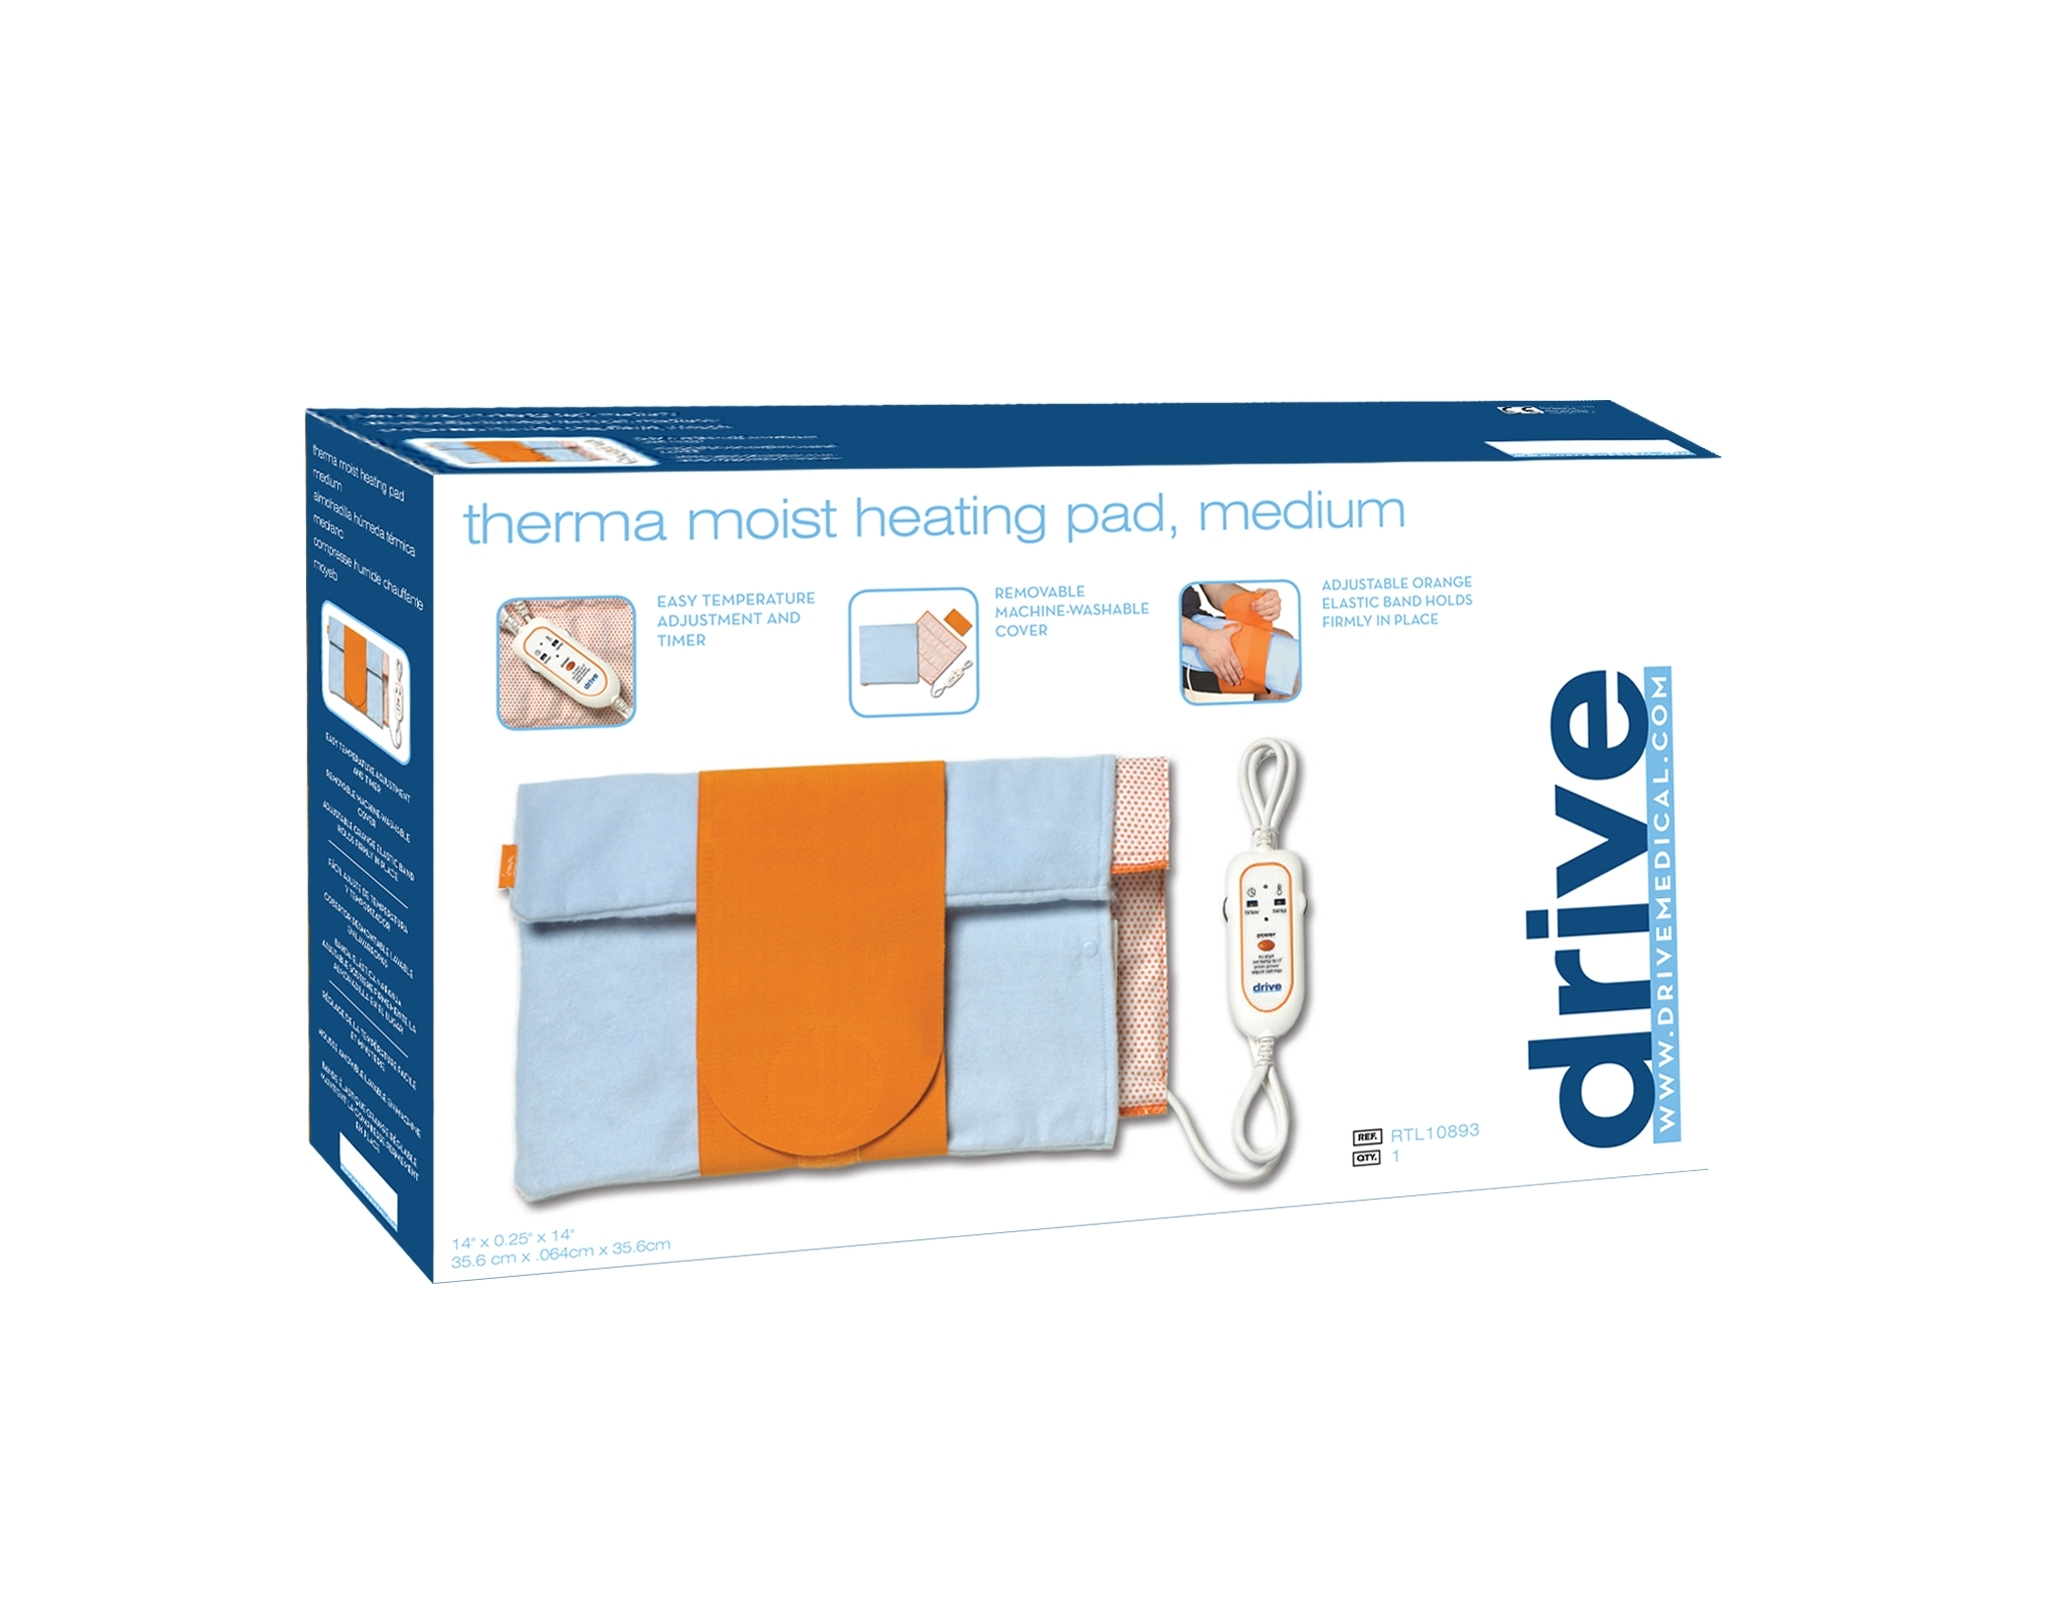 michael-graves-therma-moist-heating-pad-10893-drive-medical-2.jpg